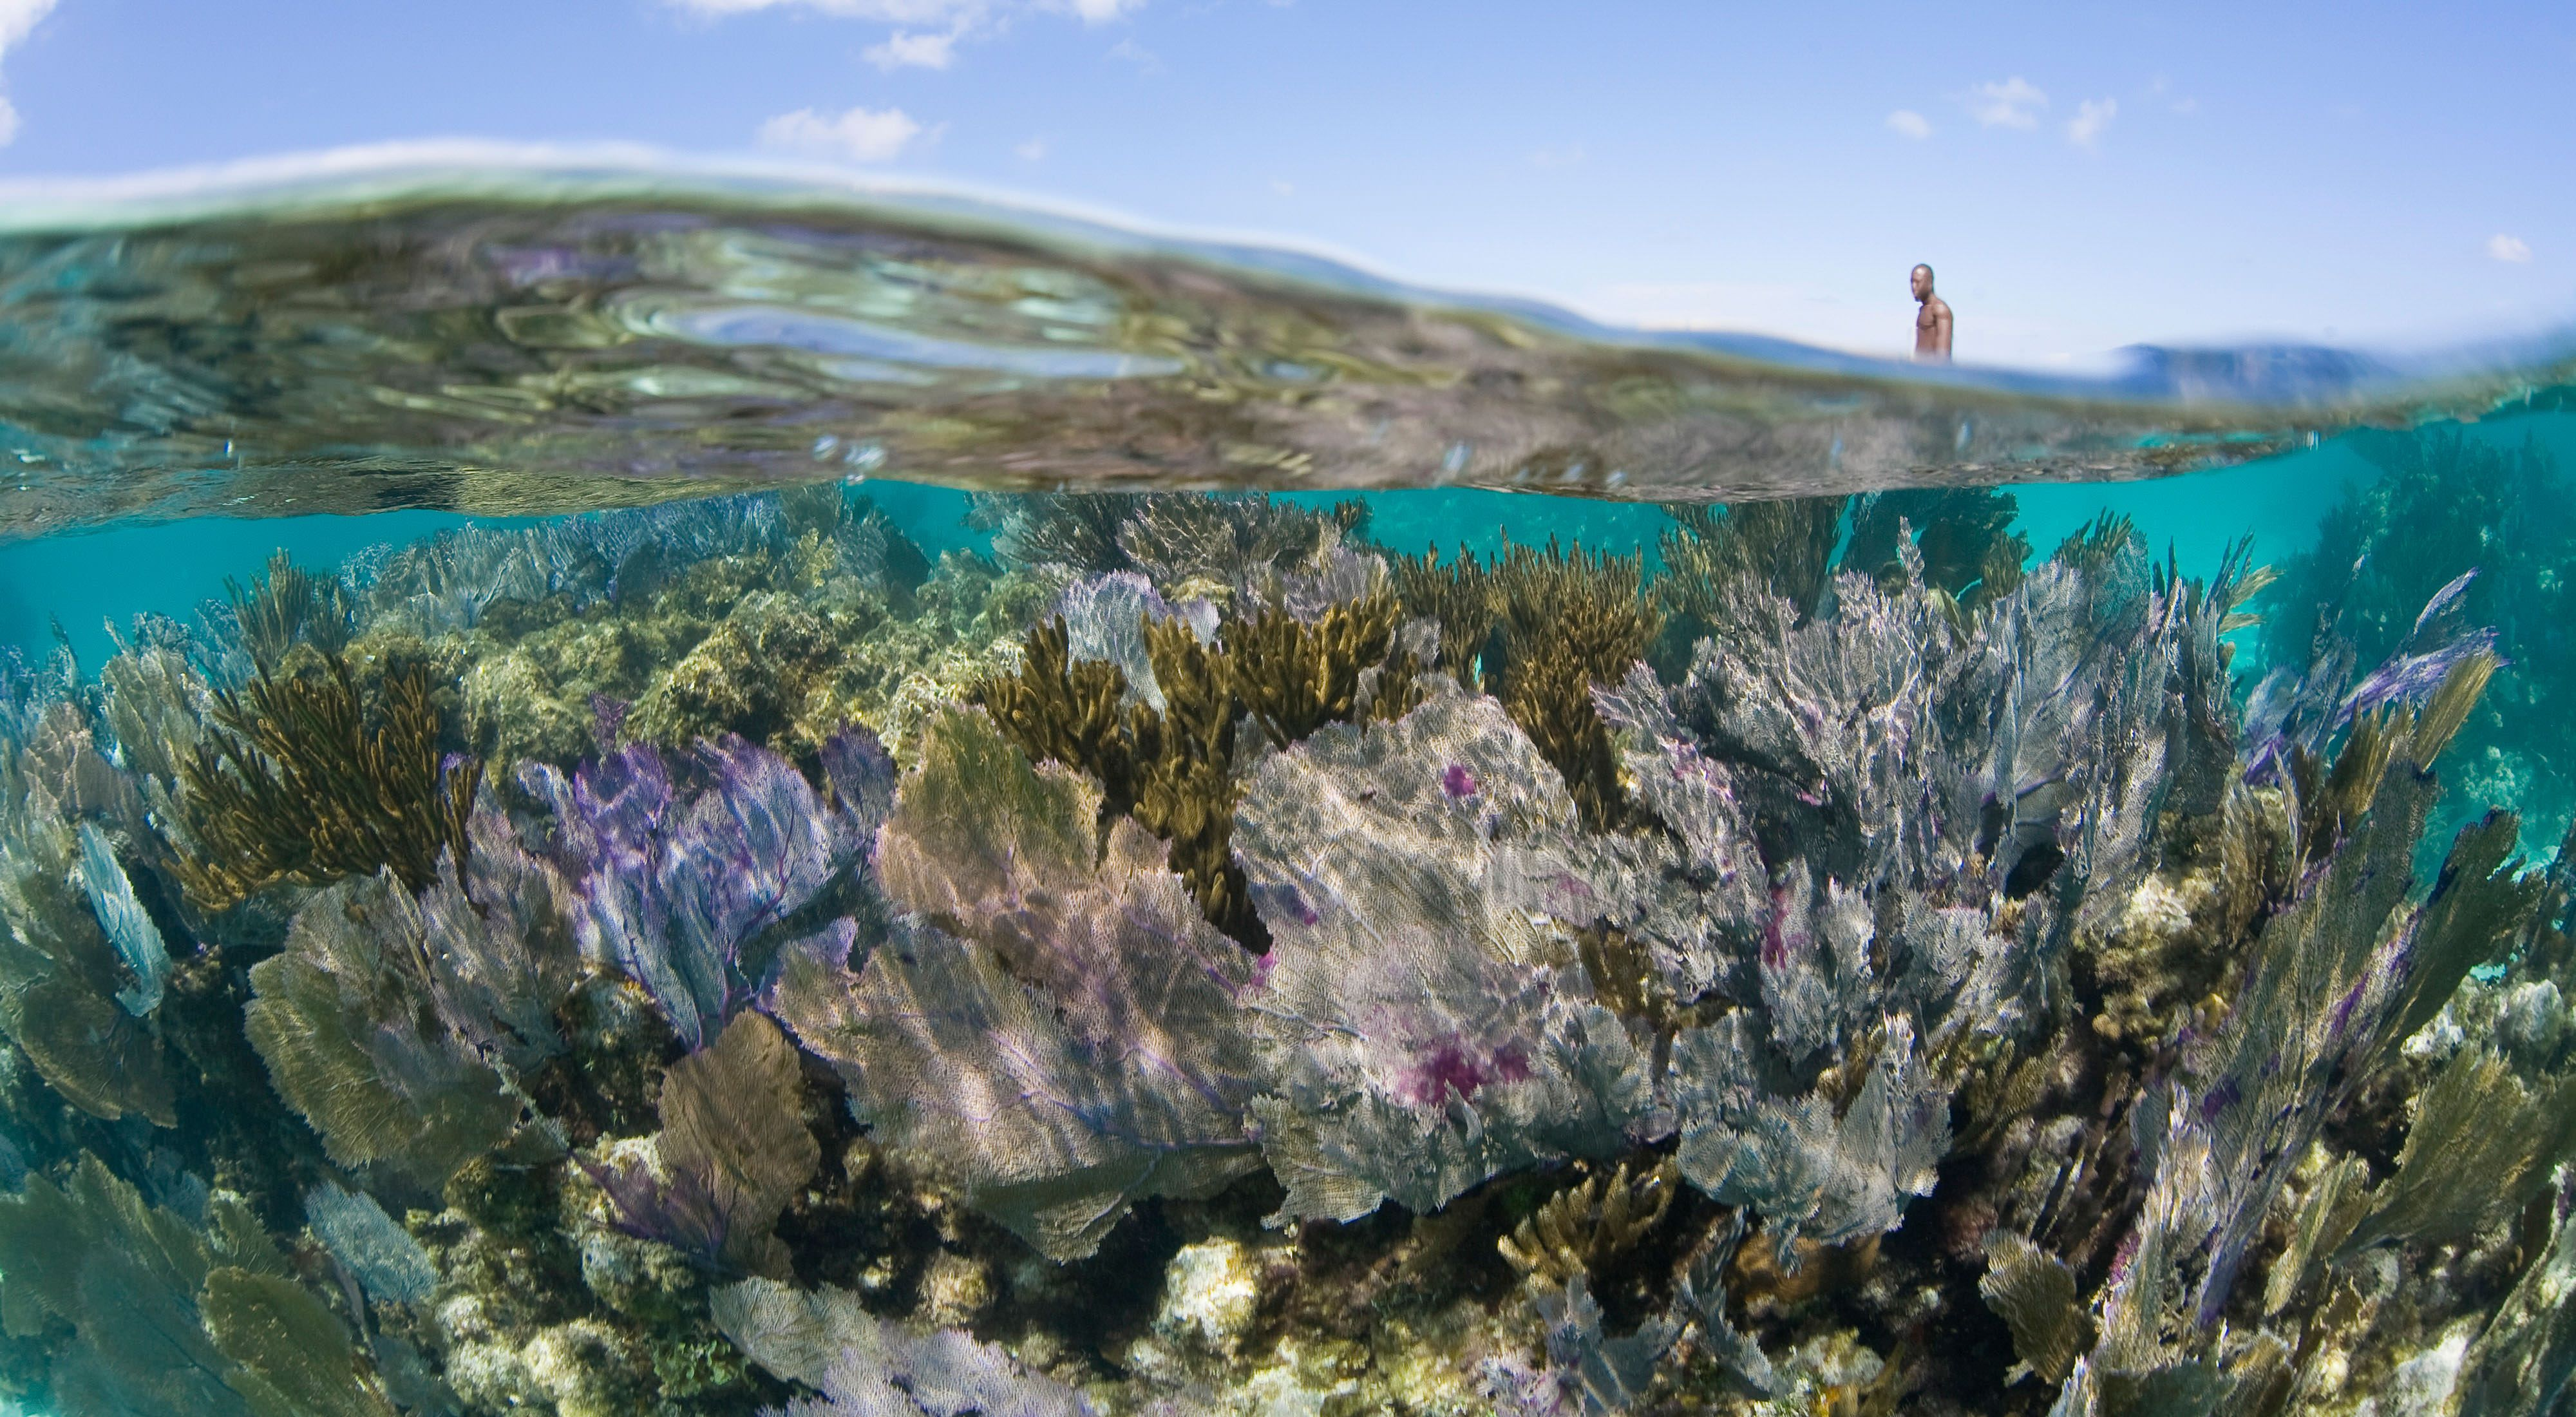 Underwater view of coral reef with blue sky above and a